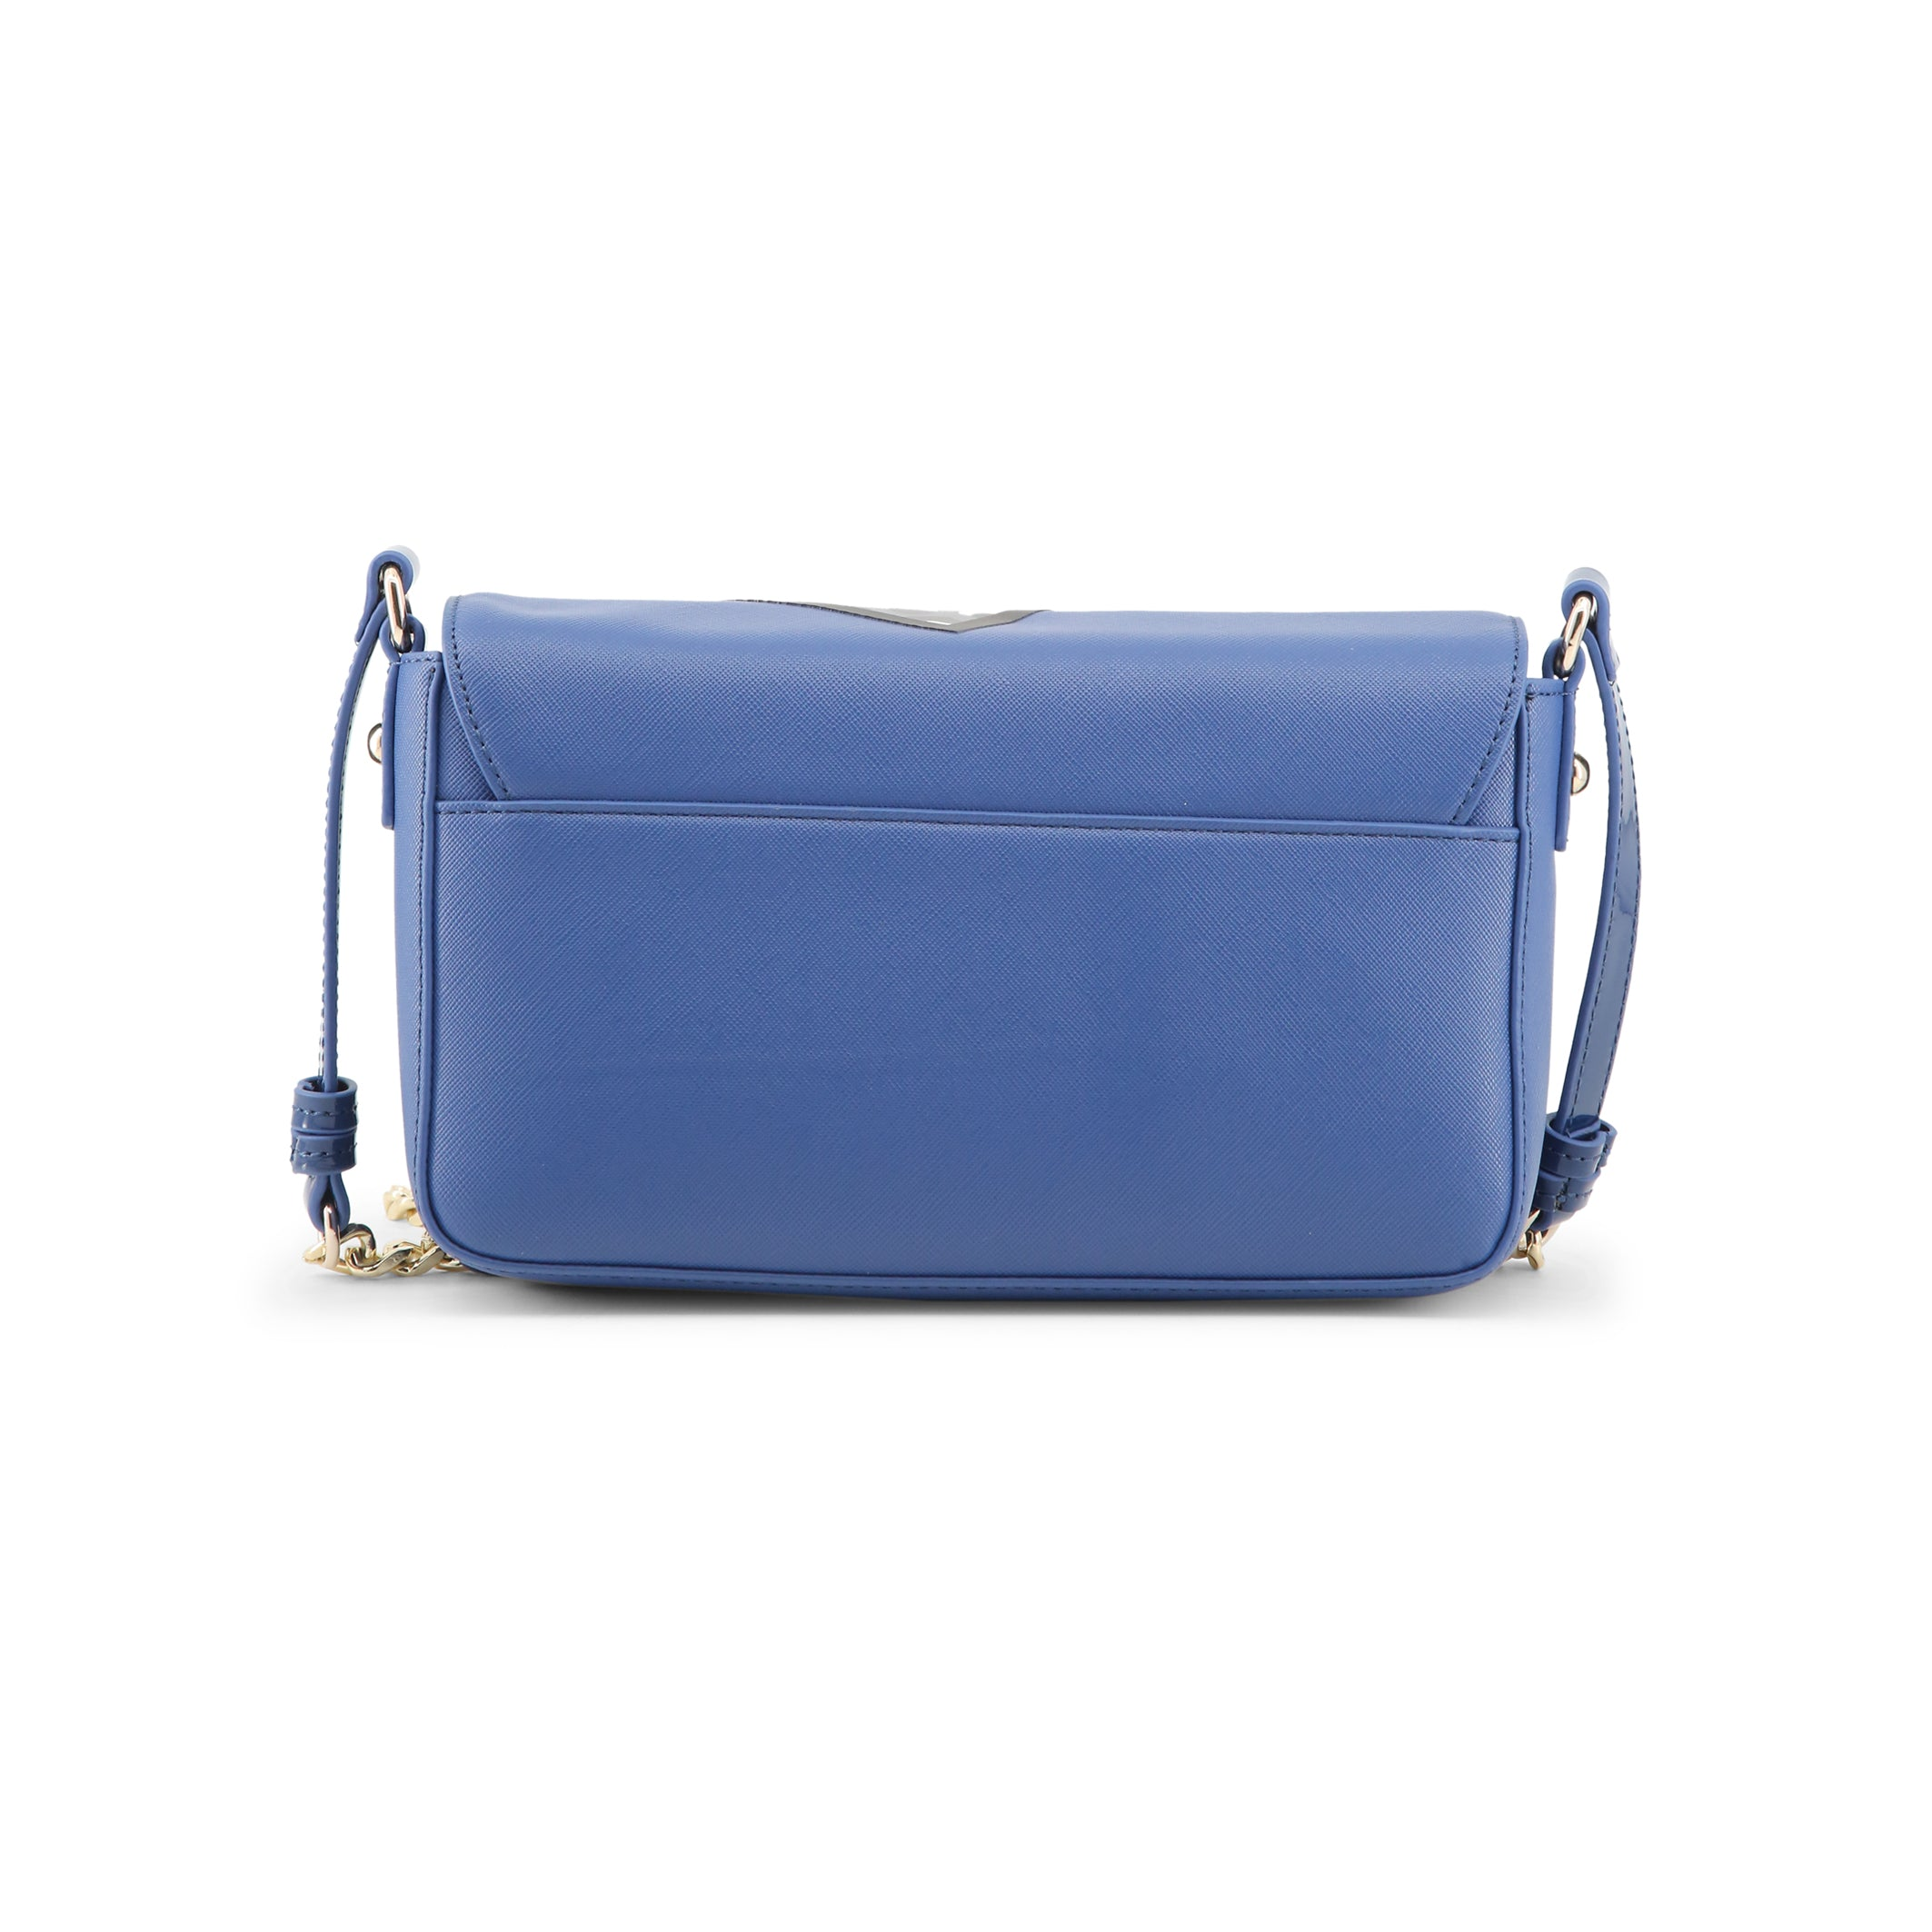 479d21d7a4 Versace Jeans Womens Crossbody Bags E1VQBBF9-75457 – Gifts Are Blue